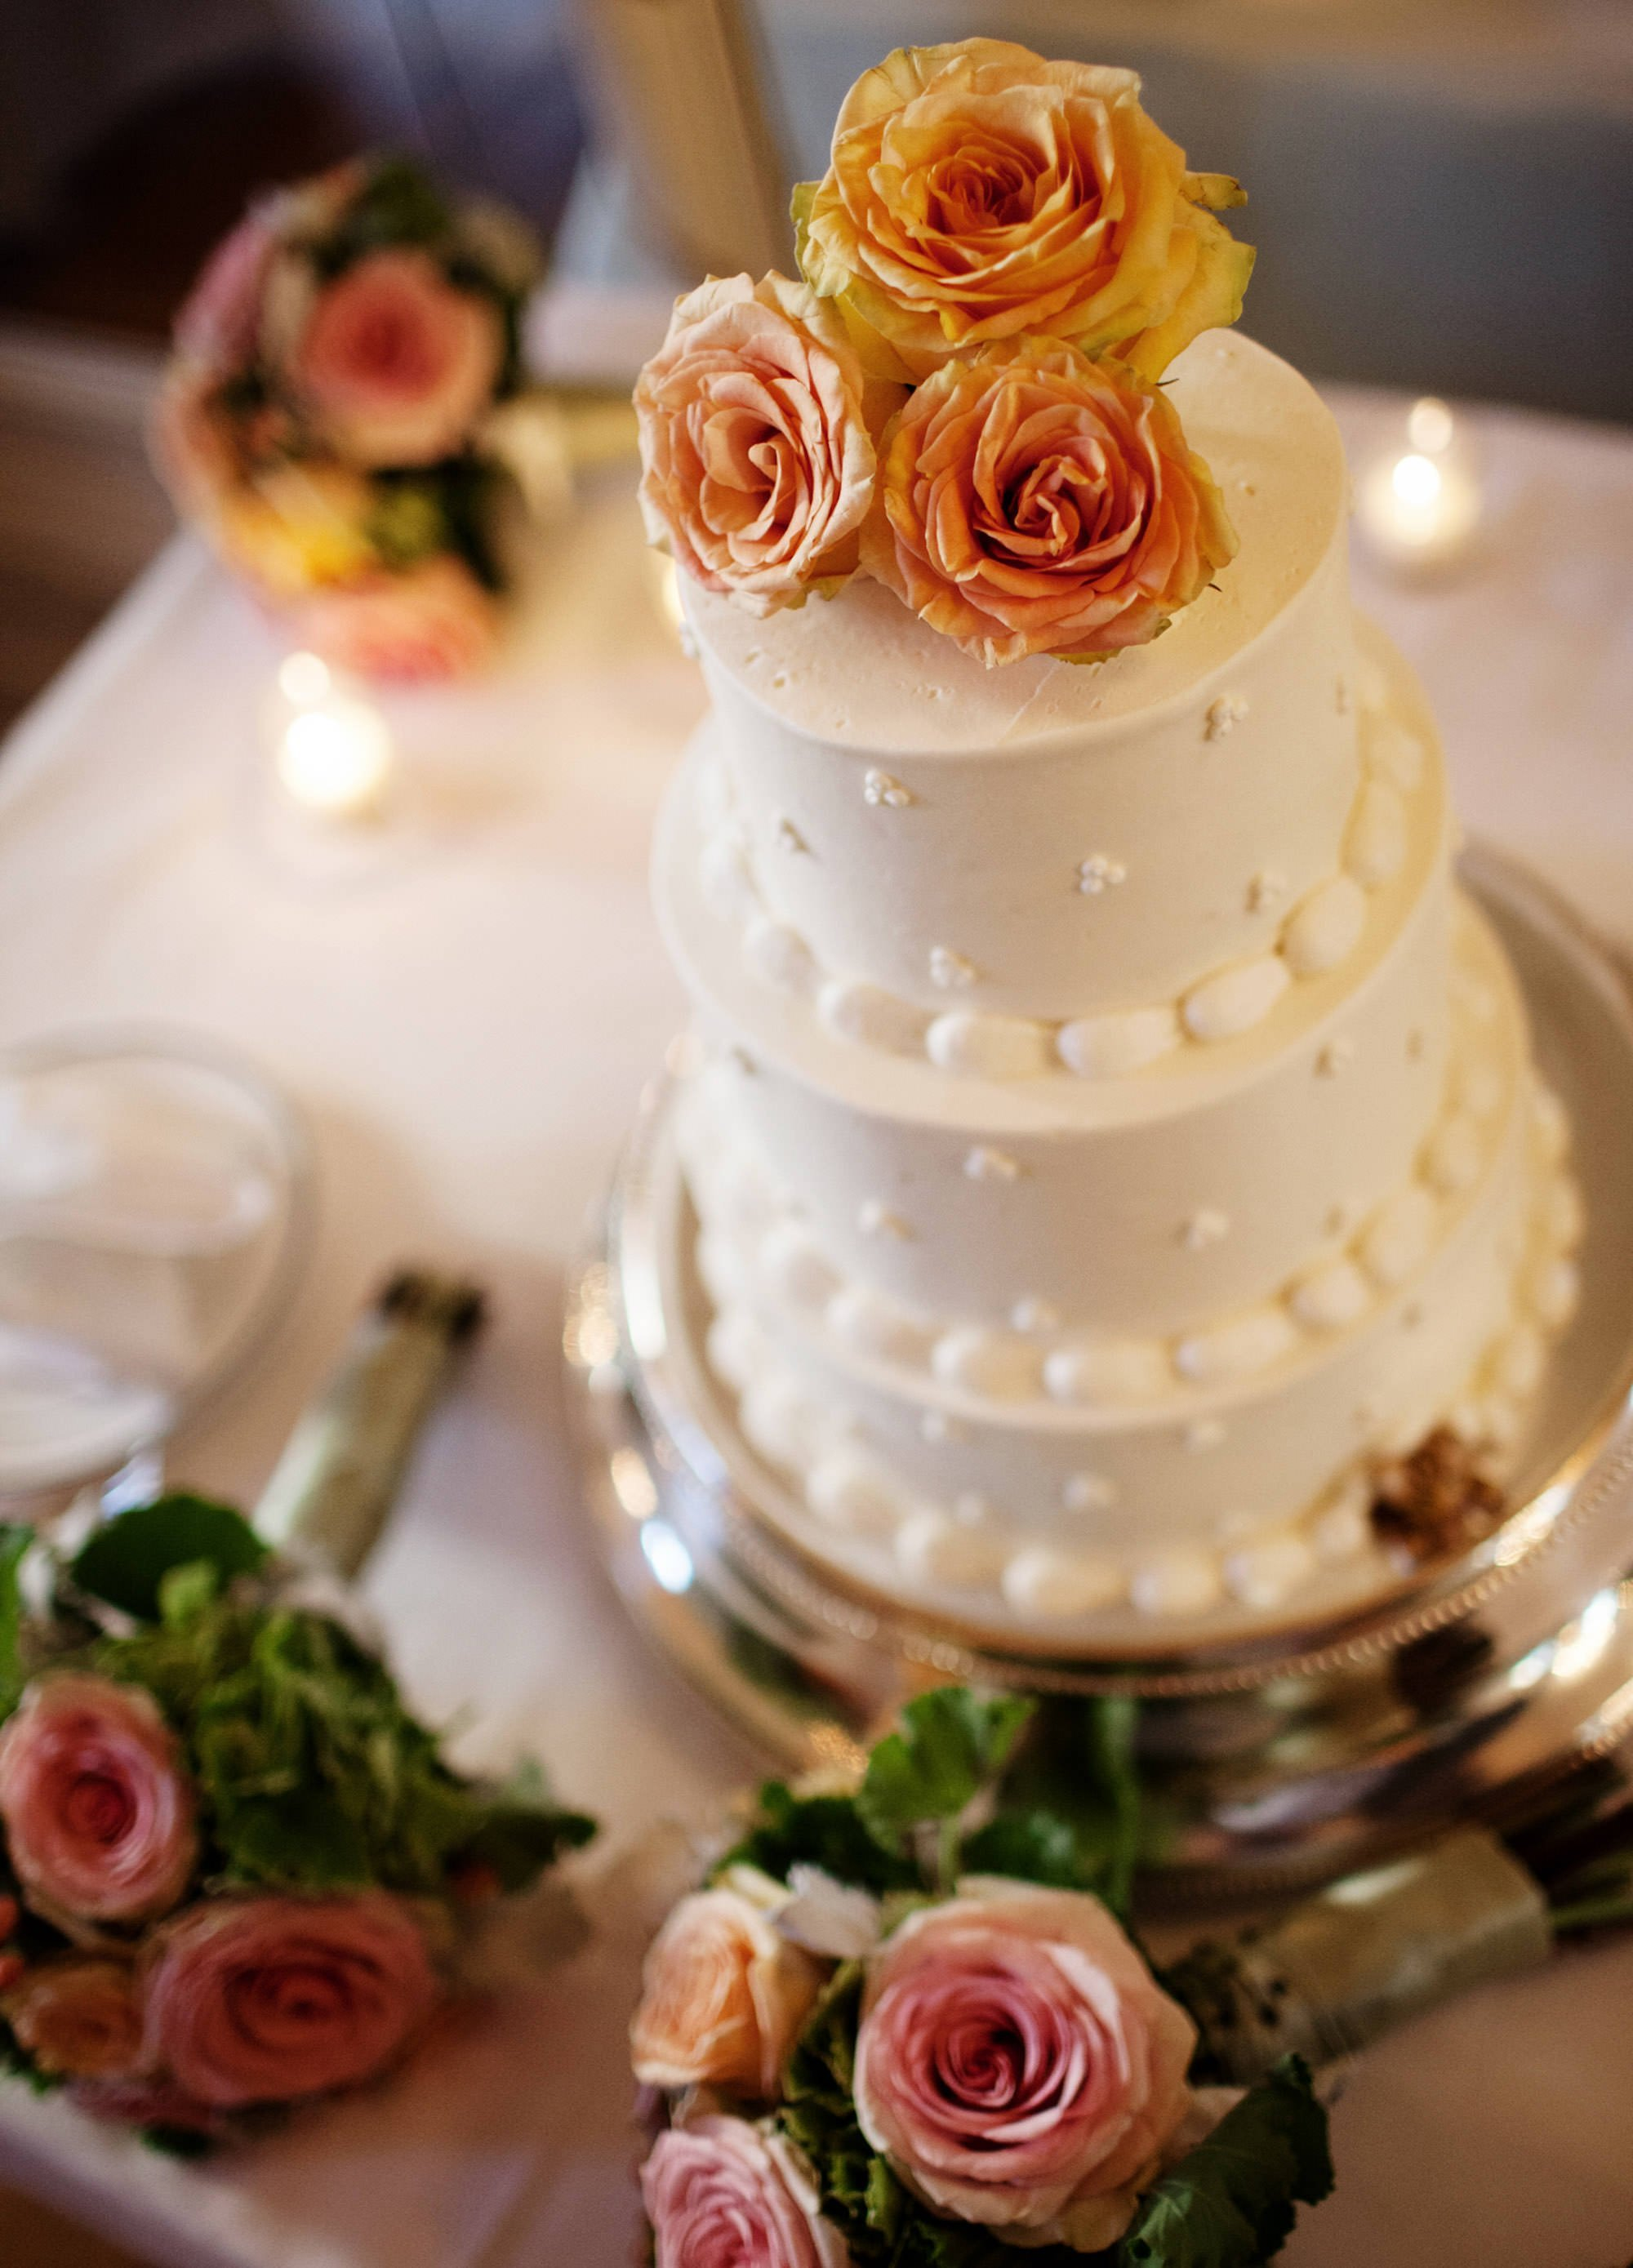 A detail of the wedding cake at Sulgrave Club.